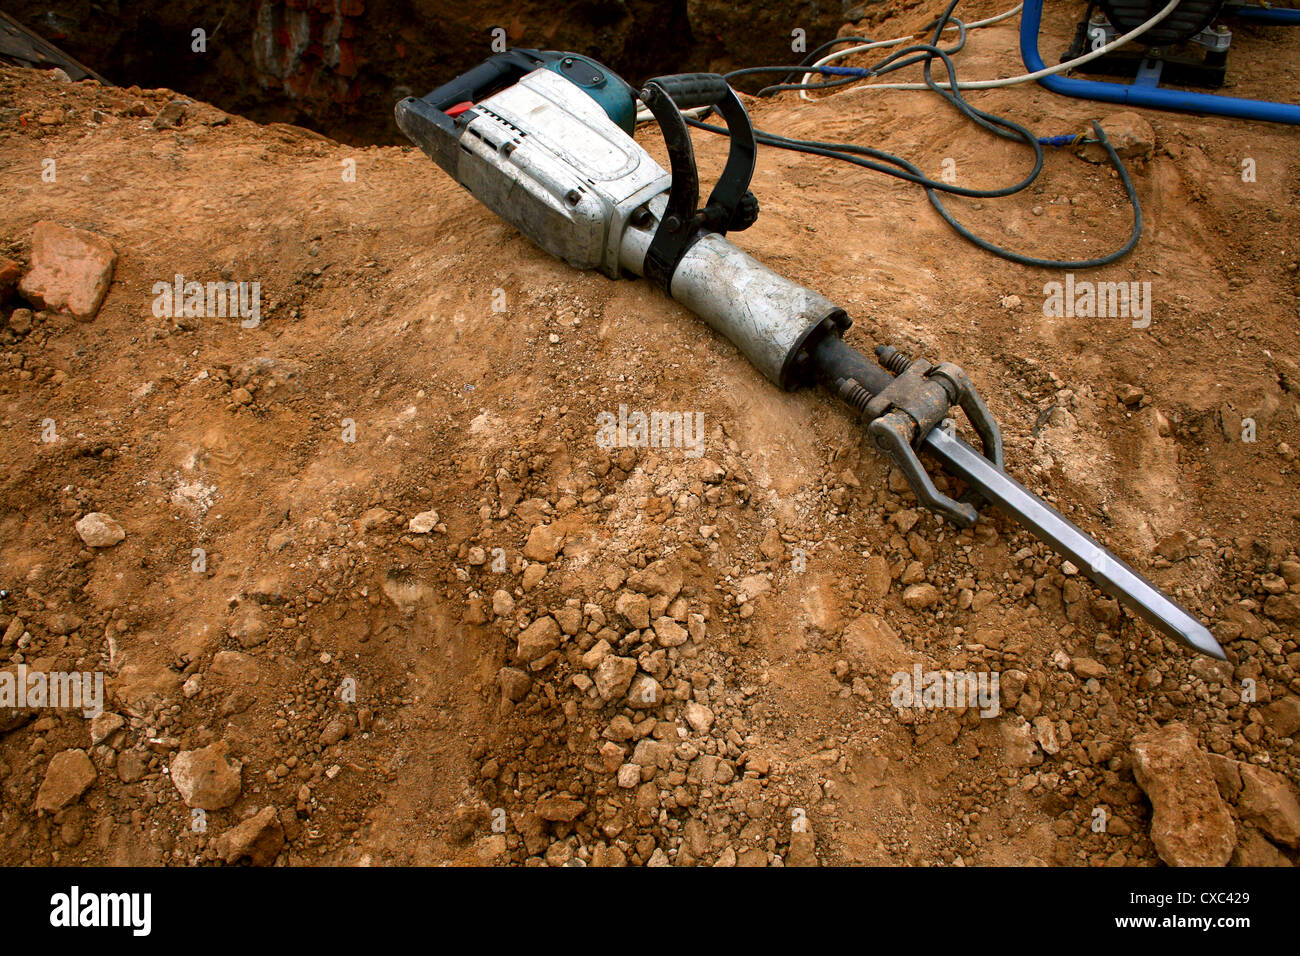 Grungy pneumatic hammer lying on the ground - Stock Image